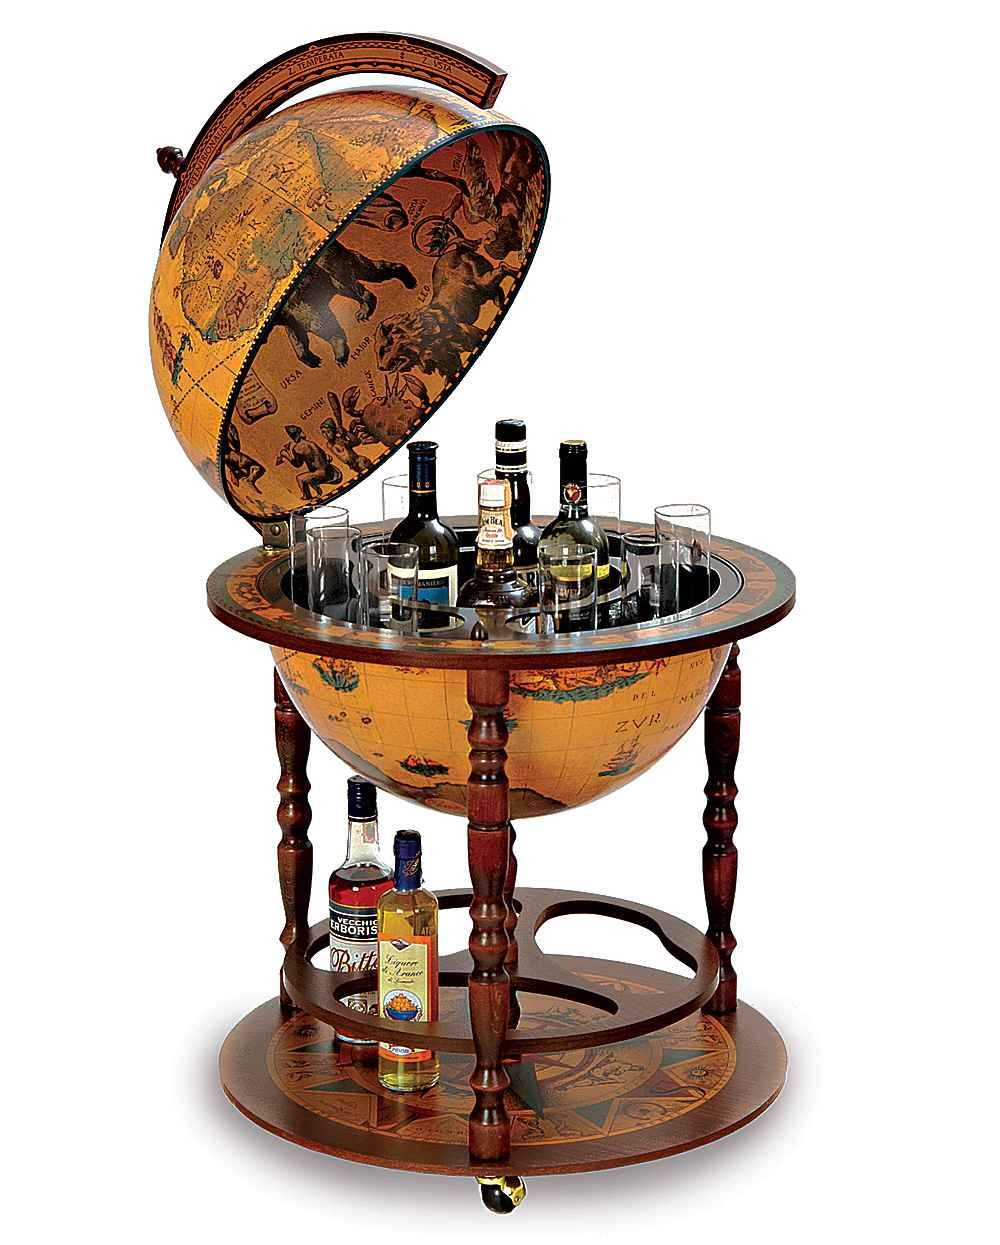 Morientez Globe Barthe Bar Is A Budget Drinks Cabinet That Can Up To 4 Bottles And 12 Gles In Its Century Replica Antique